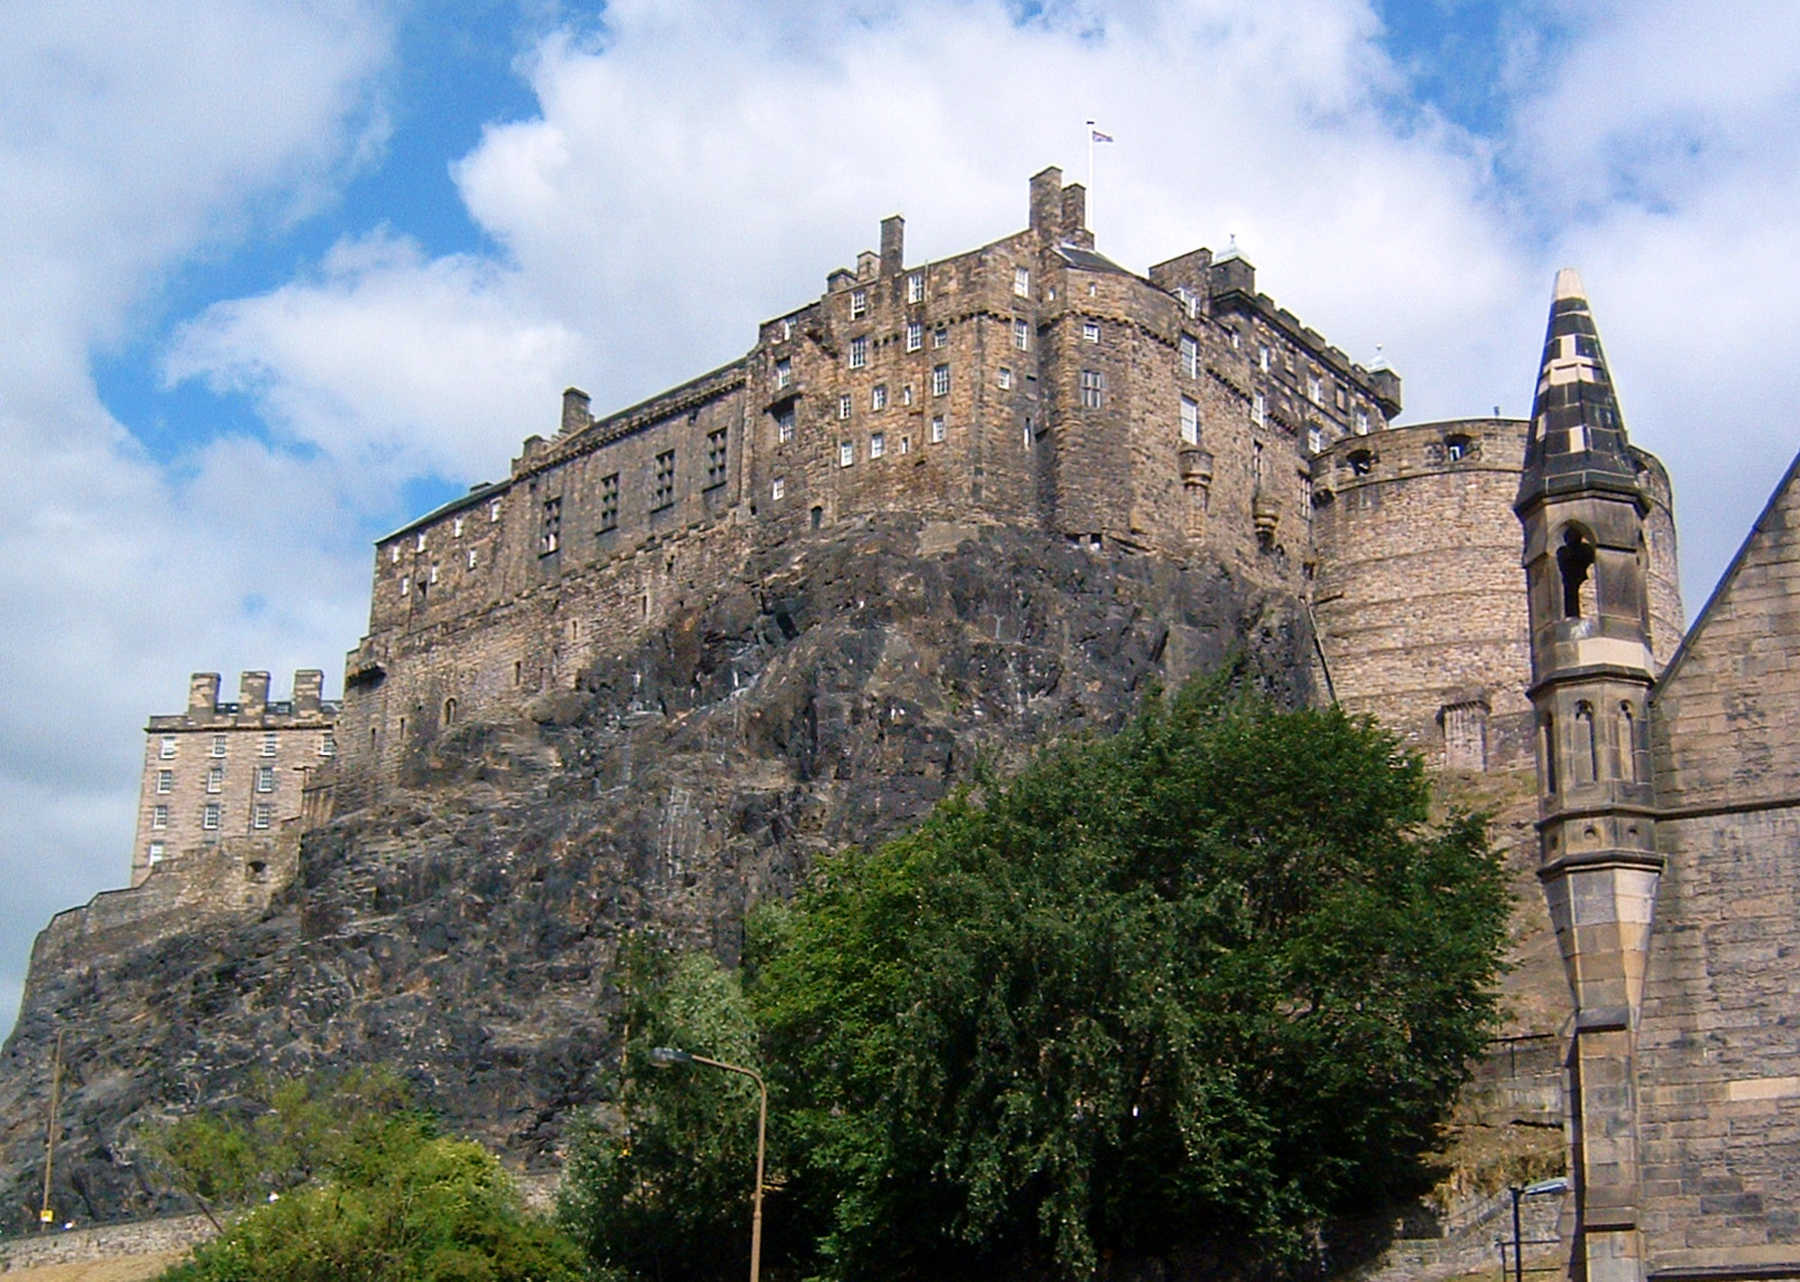 Edinburgh Castle Exterior, Edinburgh, Scotland